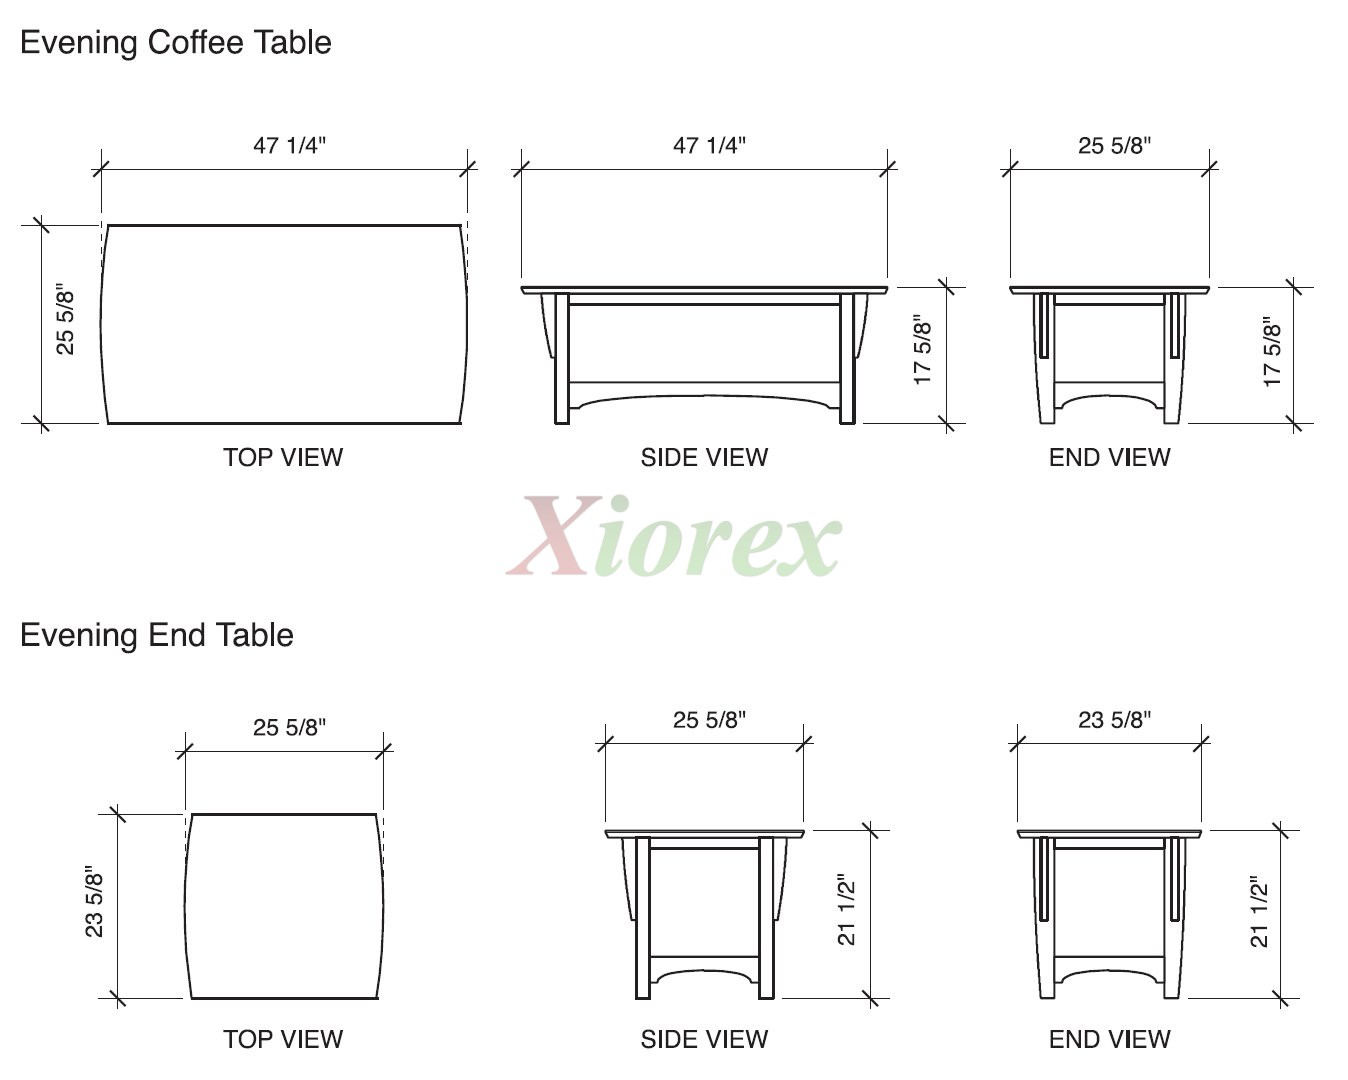 Night and Day Sunrise Futon Chair Loveseat Full Queen  : coffeetableandendtabledimensionnightanddaypremiumcollection from www.xiorex.com size 1348 x 1080 jpeg 105kB